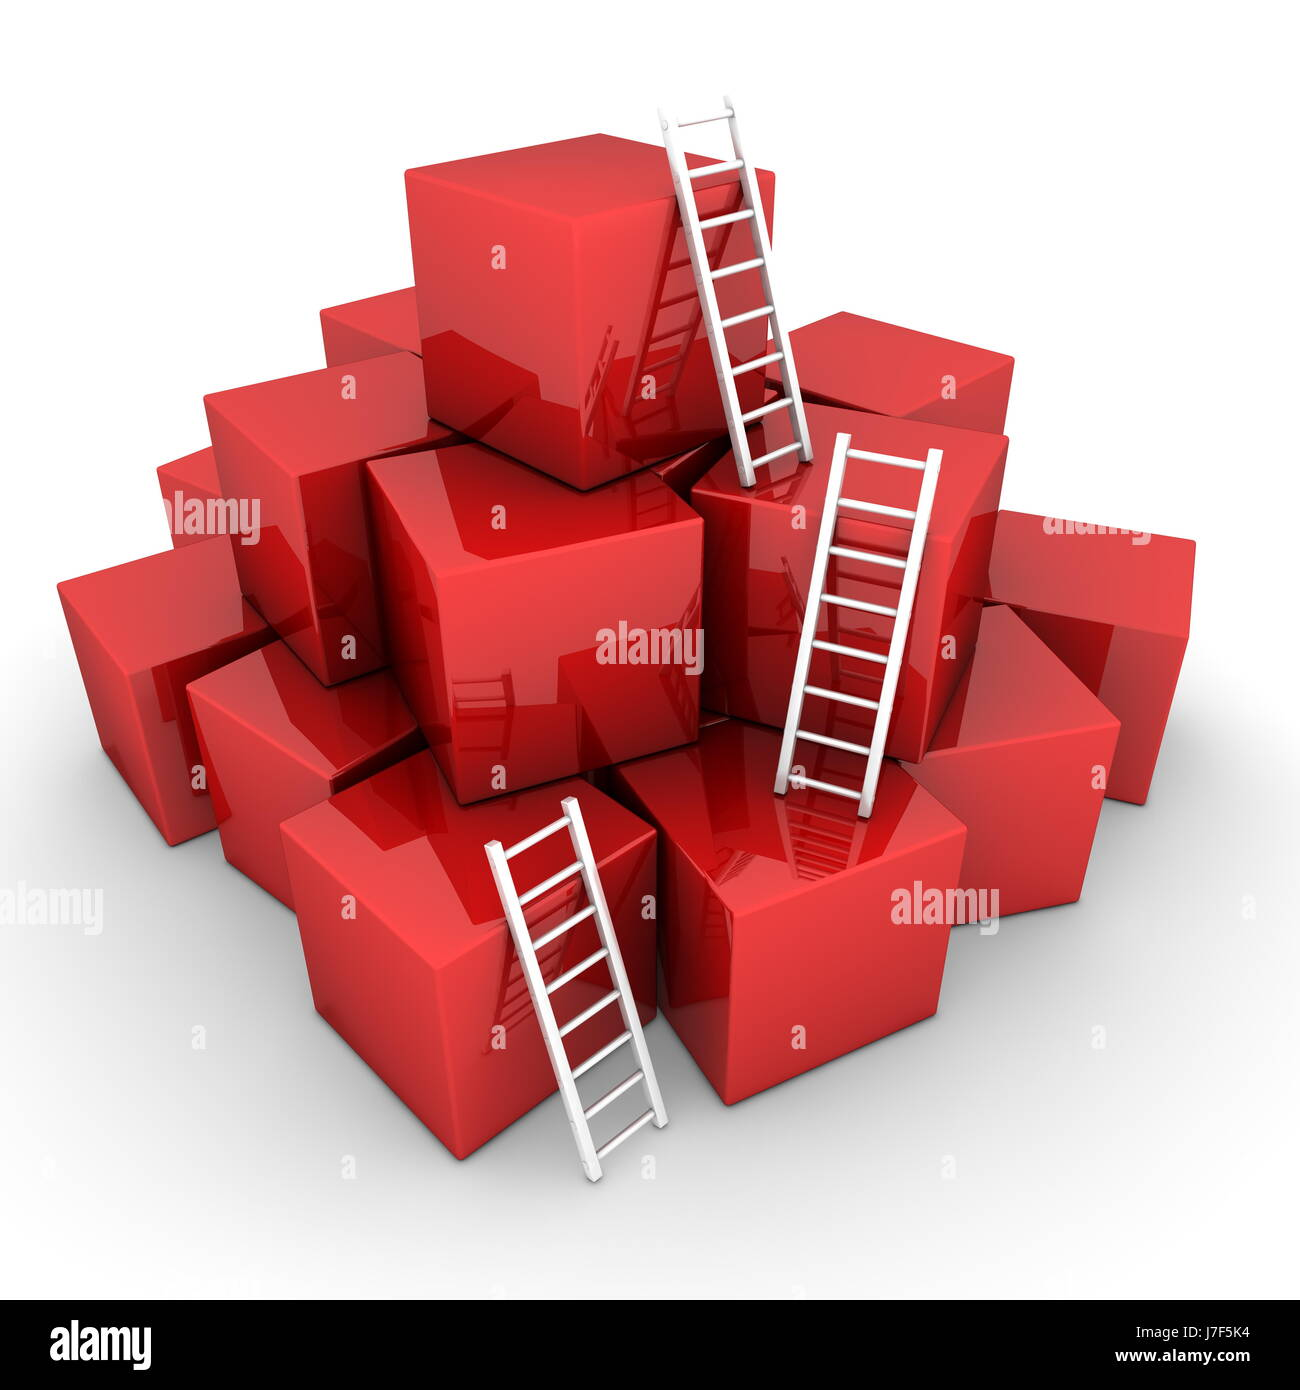 stack box boxes blocks heap pile white cubes ladders red stairs object isolated - Stock Image